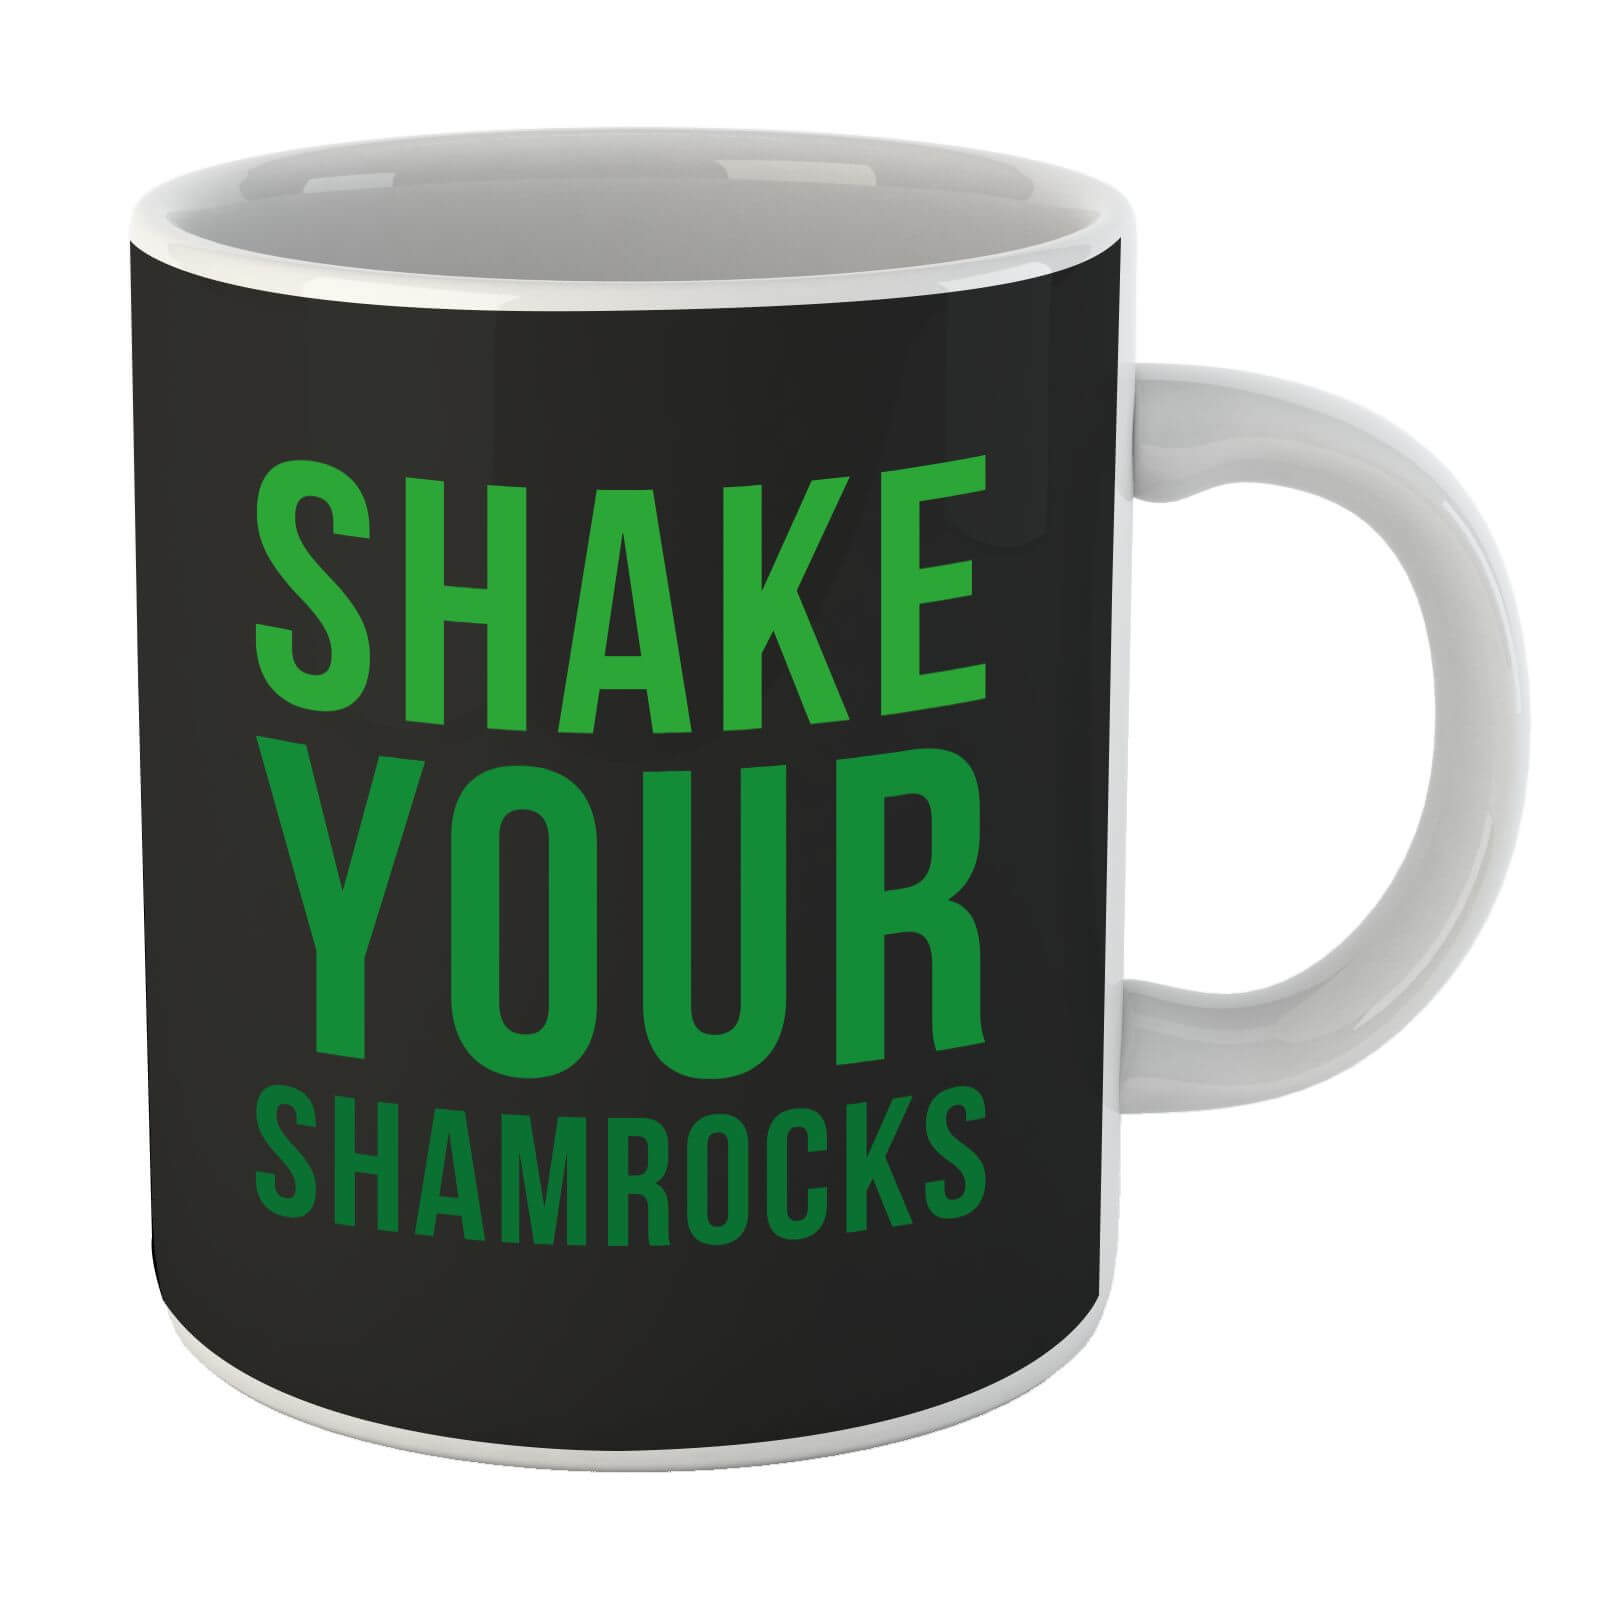 Shake Your Shamrocks Mug